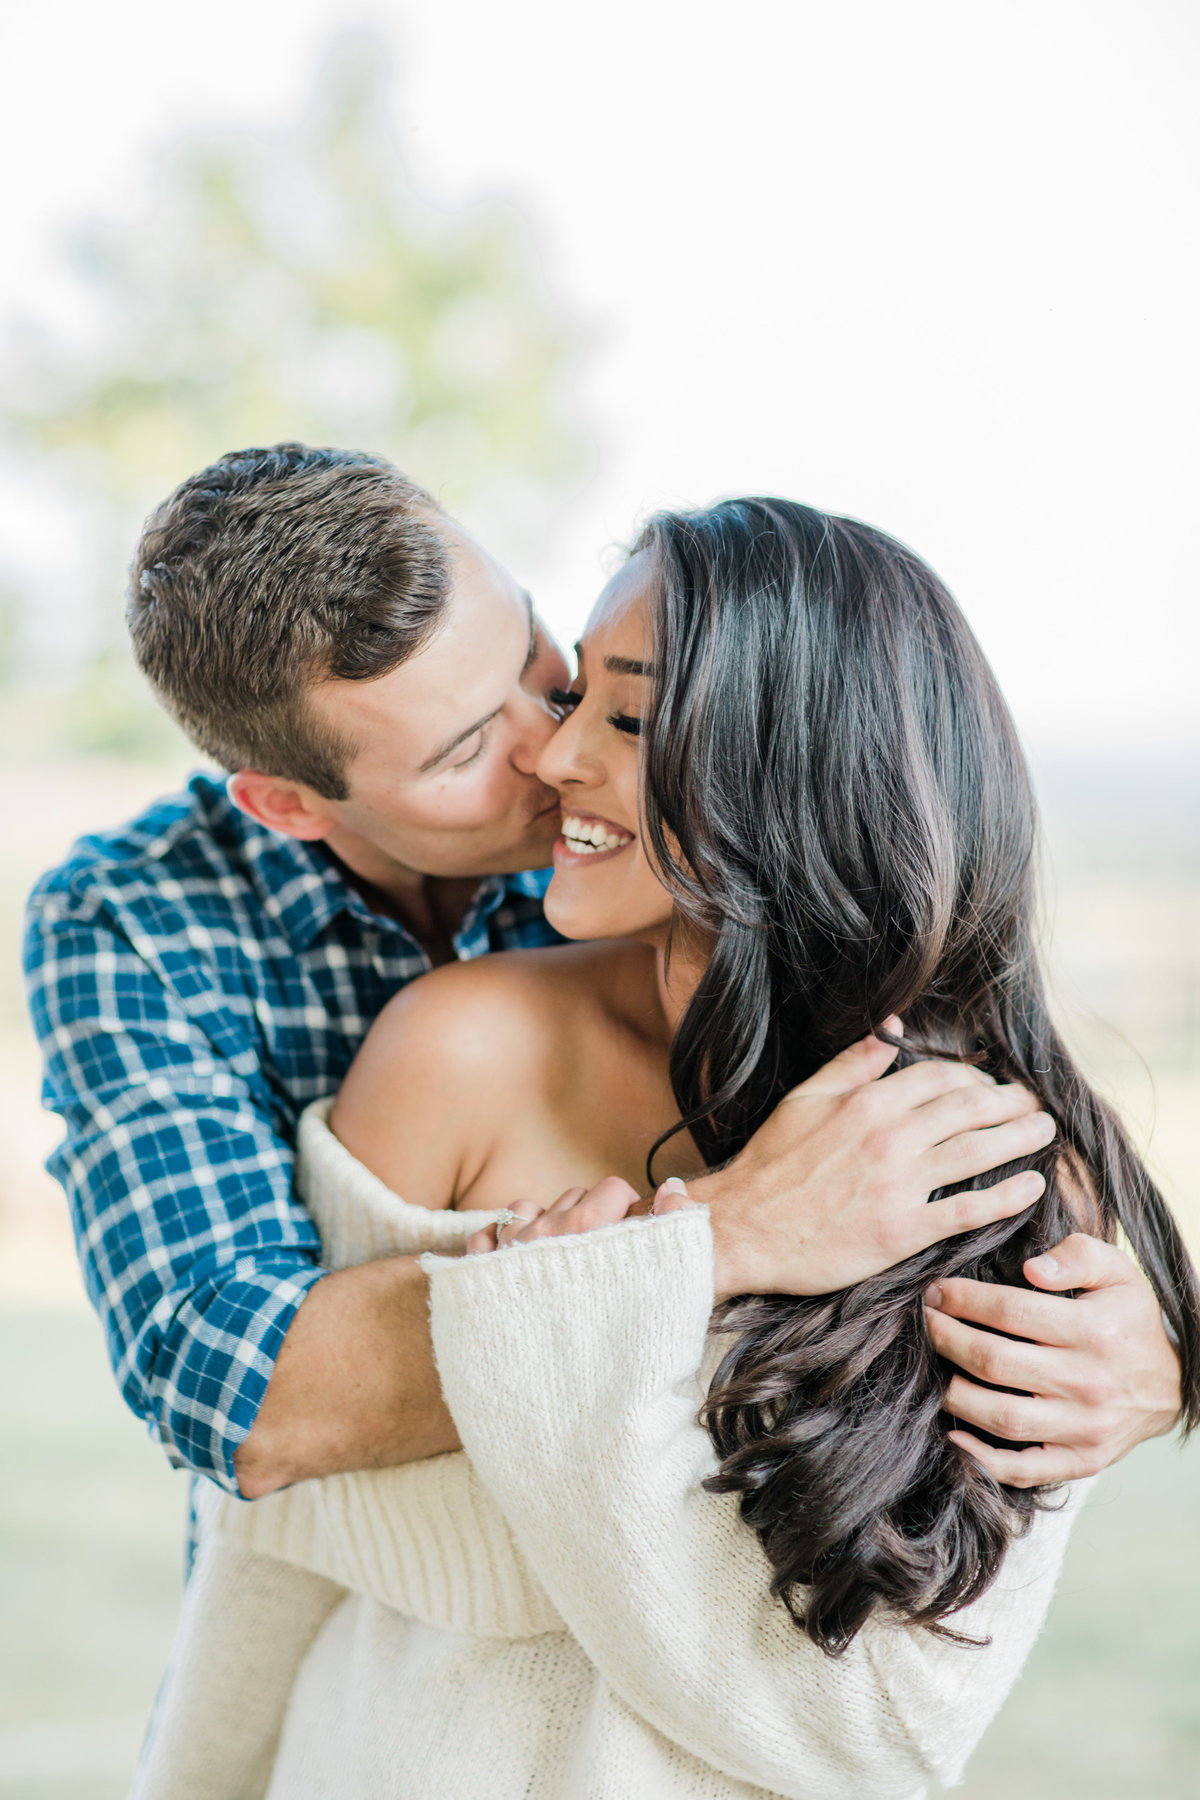 SkyMeadowsPark_Virginia_Engagement_Session_AngelikaJohnsPhotography-0047